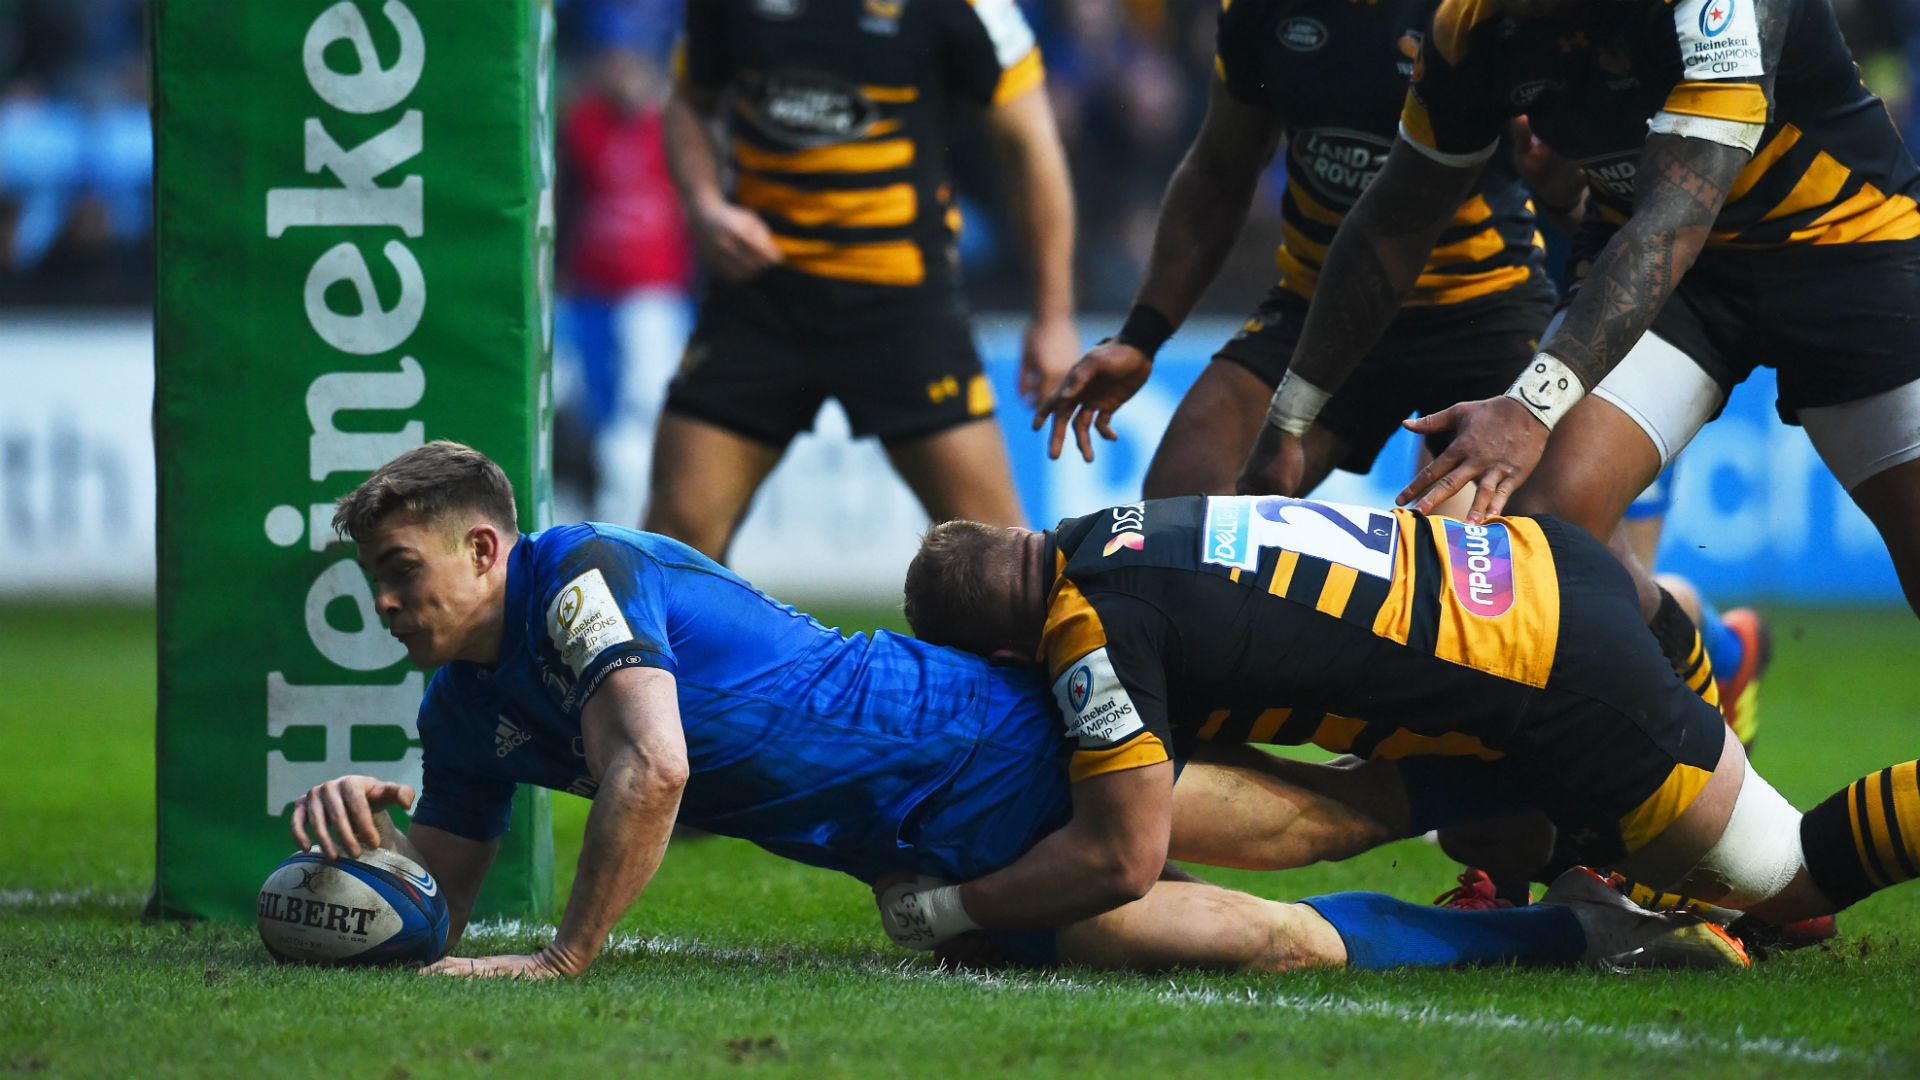 Leinster seal home quarter-final with win over Wasps